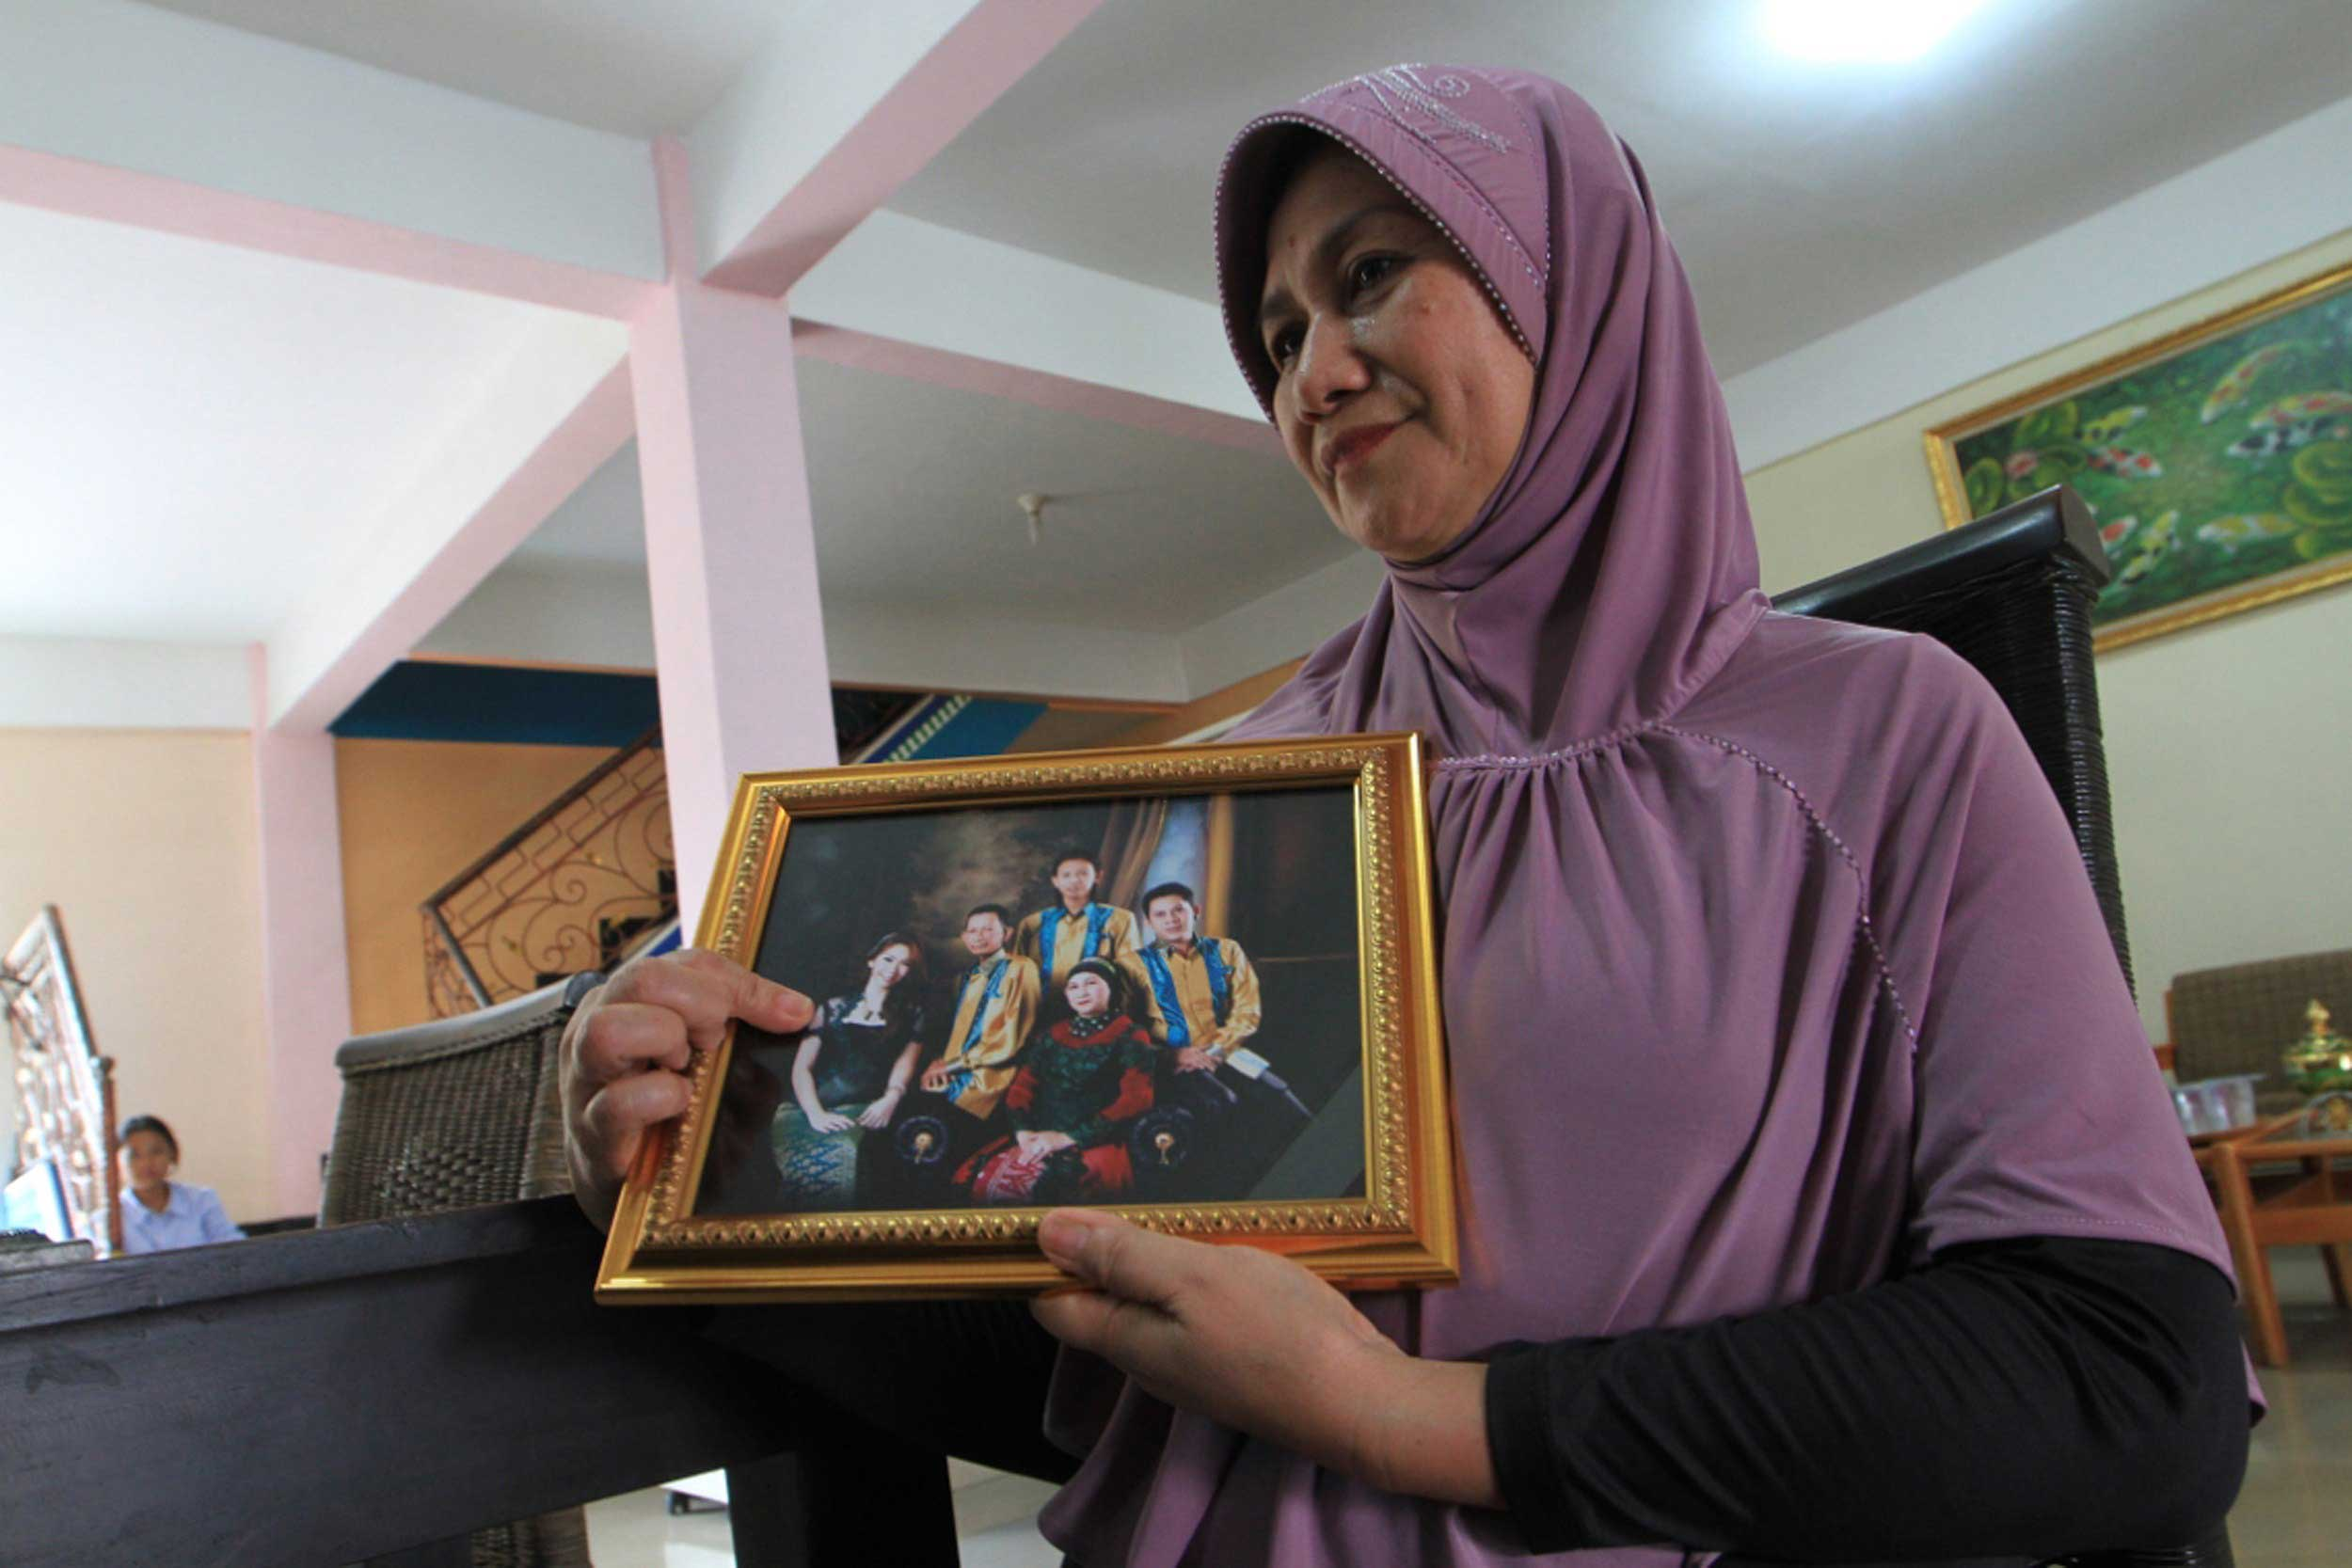 Rohana, the mother of Khairunisa, a flight attendant who was travelling on missing Air Asia Flight QZ 8501, points towards her daughter, left, within a framed family photograph in Palembang, South Sumatra, on Dec. 28, 2014.